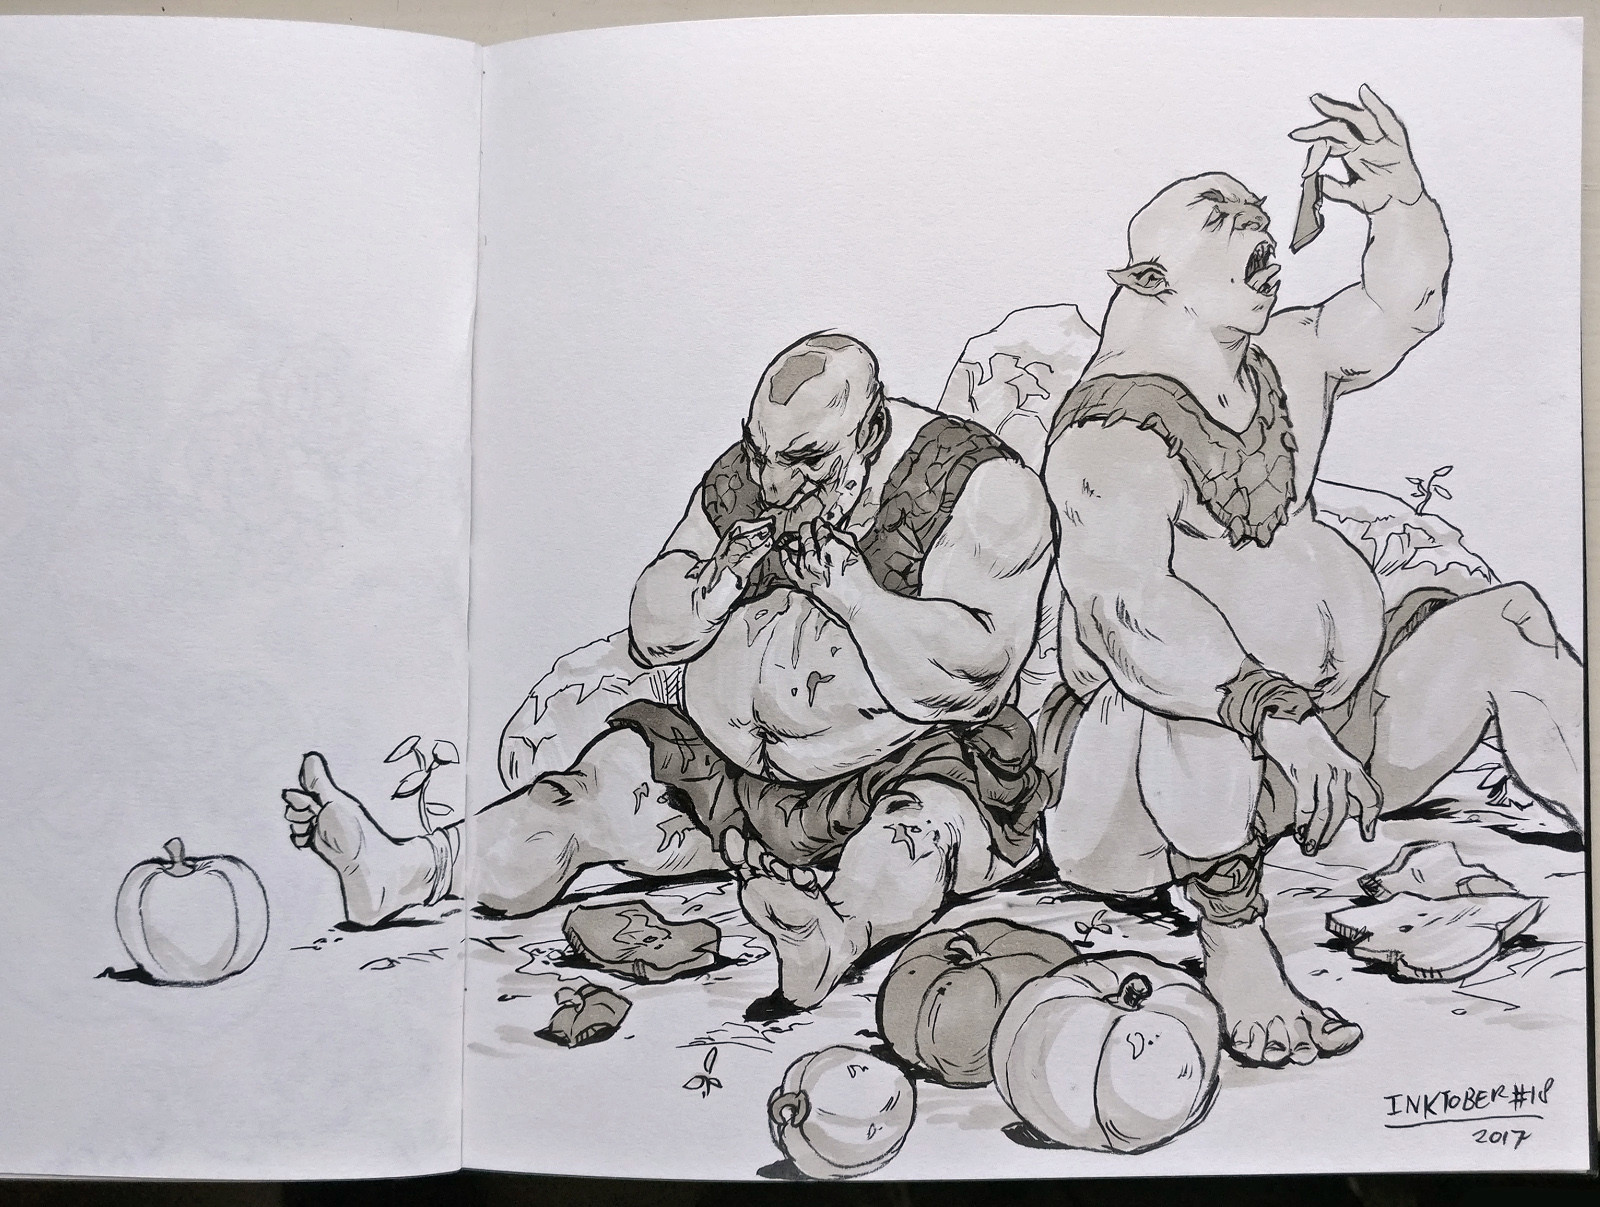 Inktober day 18! Filthy